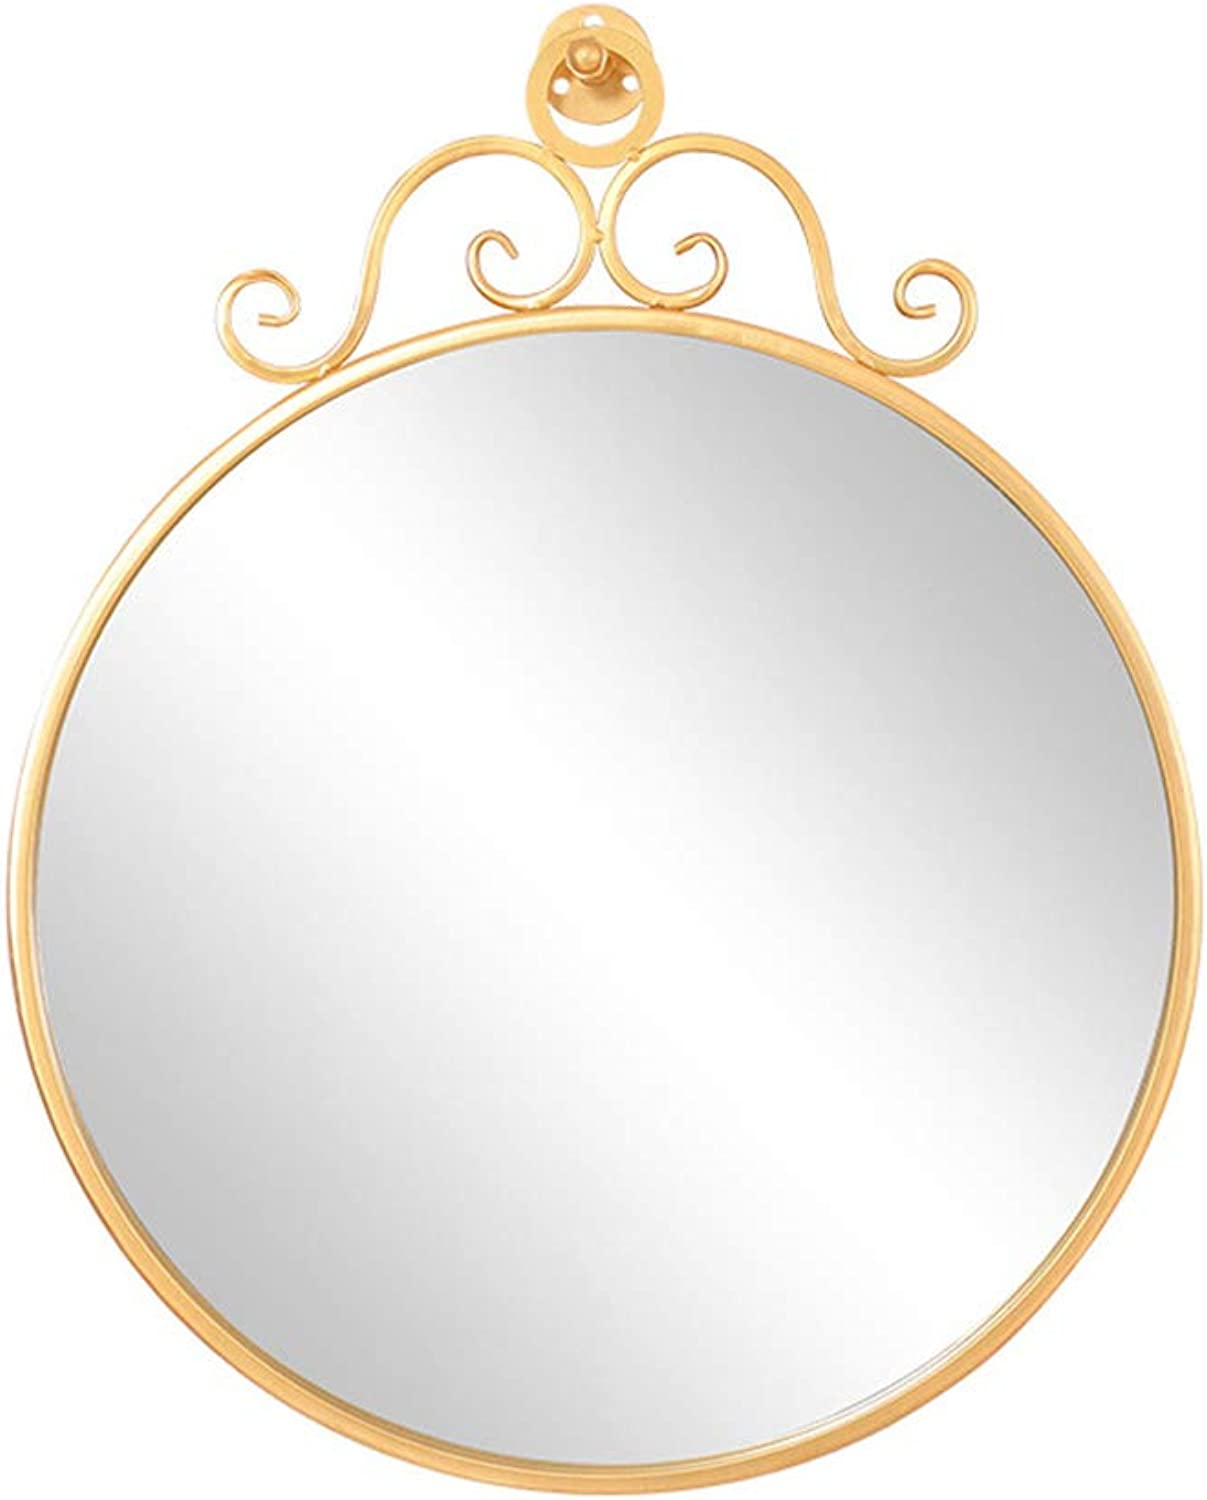 Bathroom Wall-Mounted Round Mirror gold Wrought Iron Frame, Bedroom Hotel Vanity Mirror Shaving Mirror, Diameter 16 20 24cm